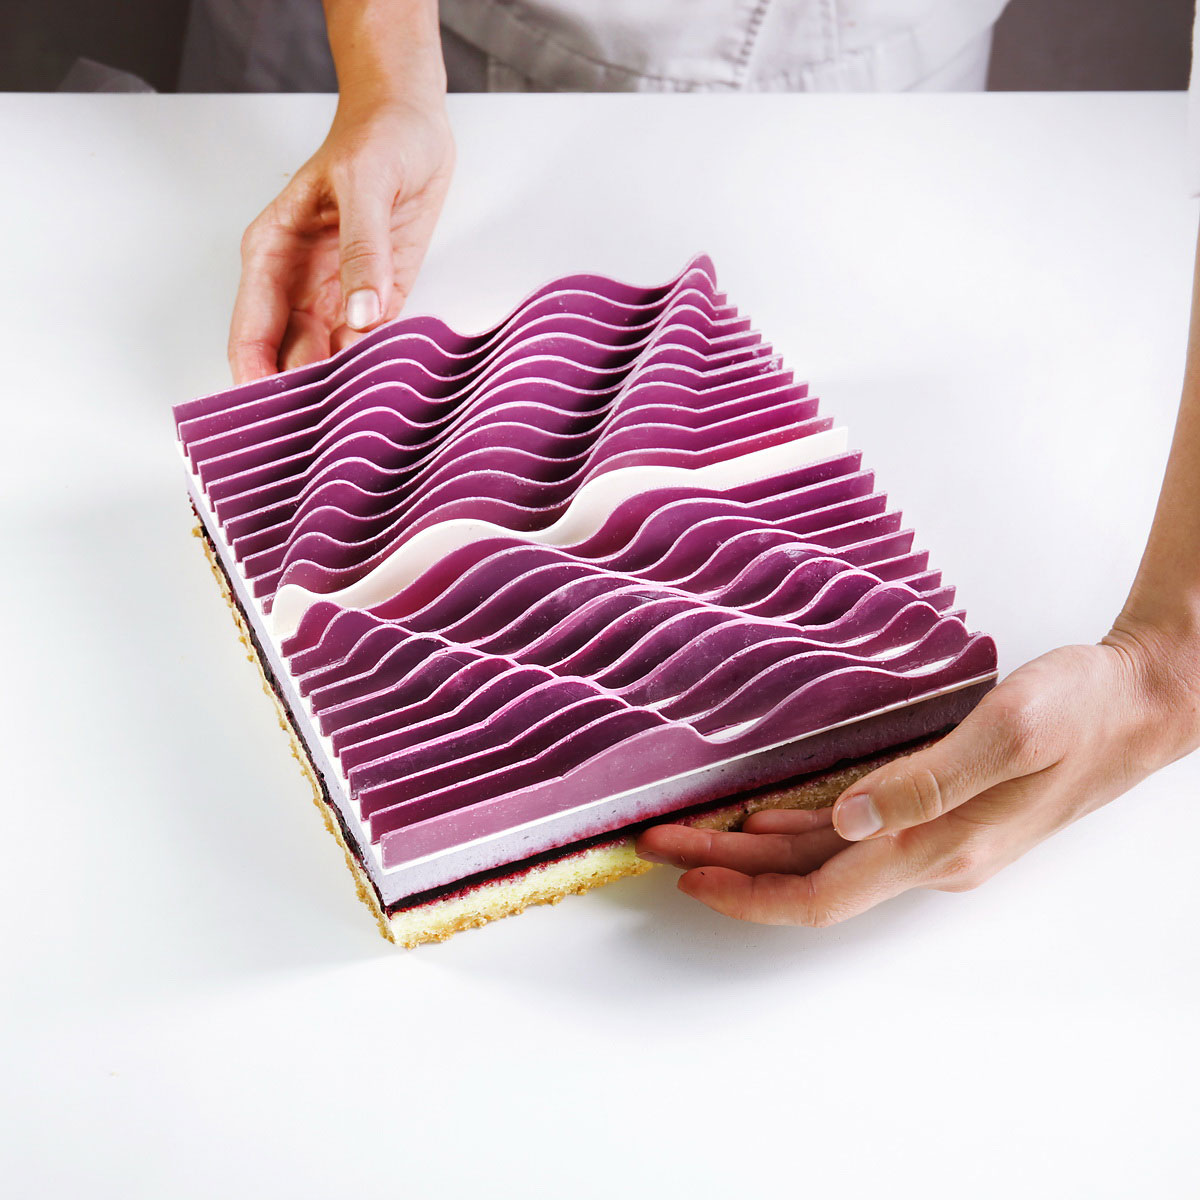 Geometrical Kinetic Tarts #2